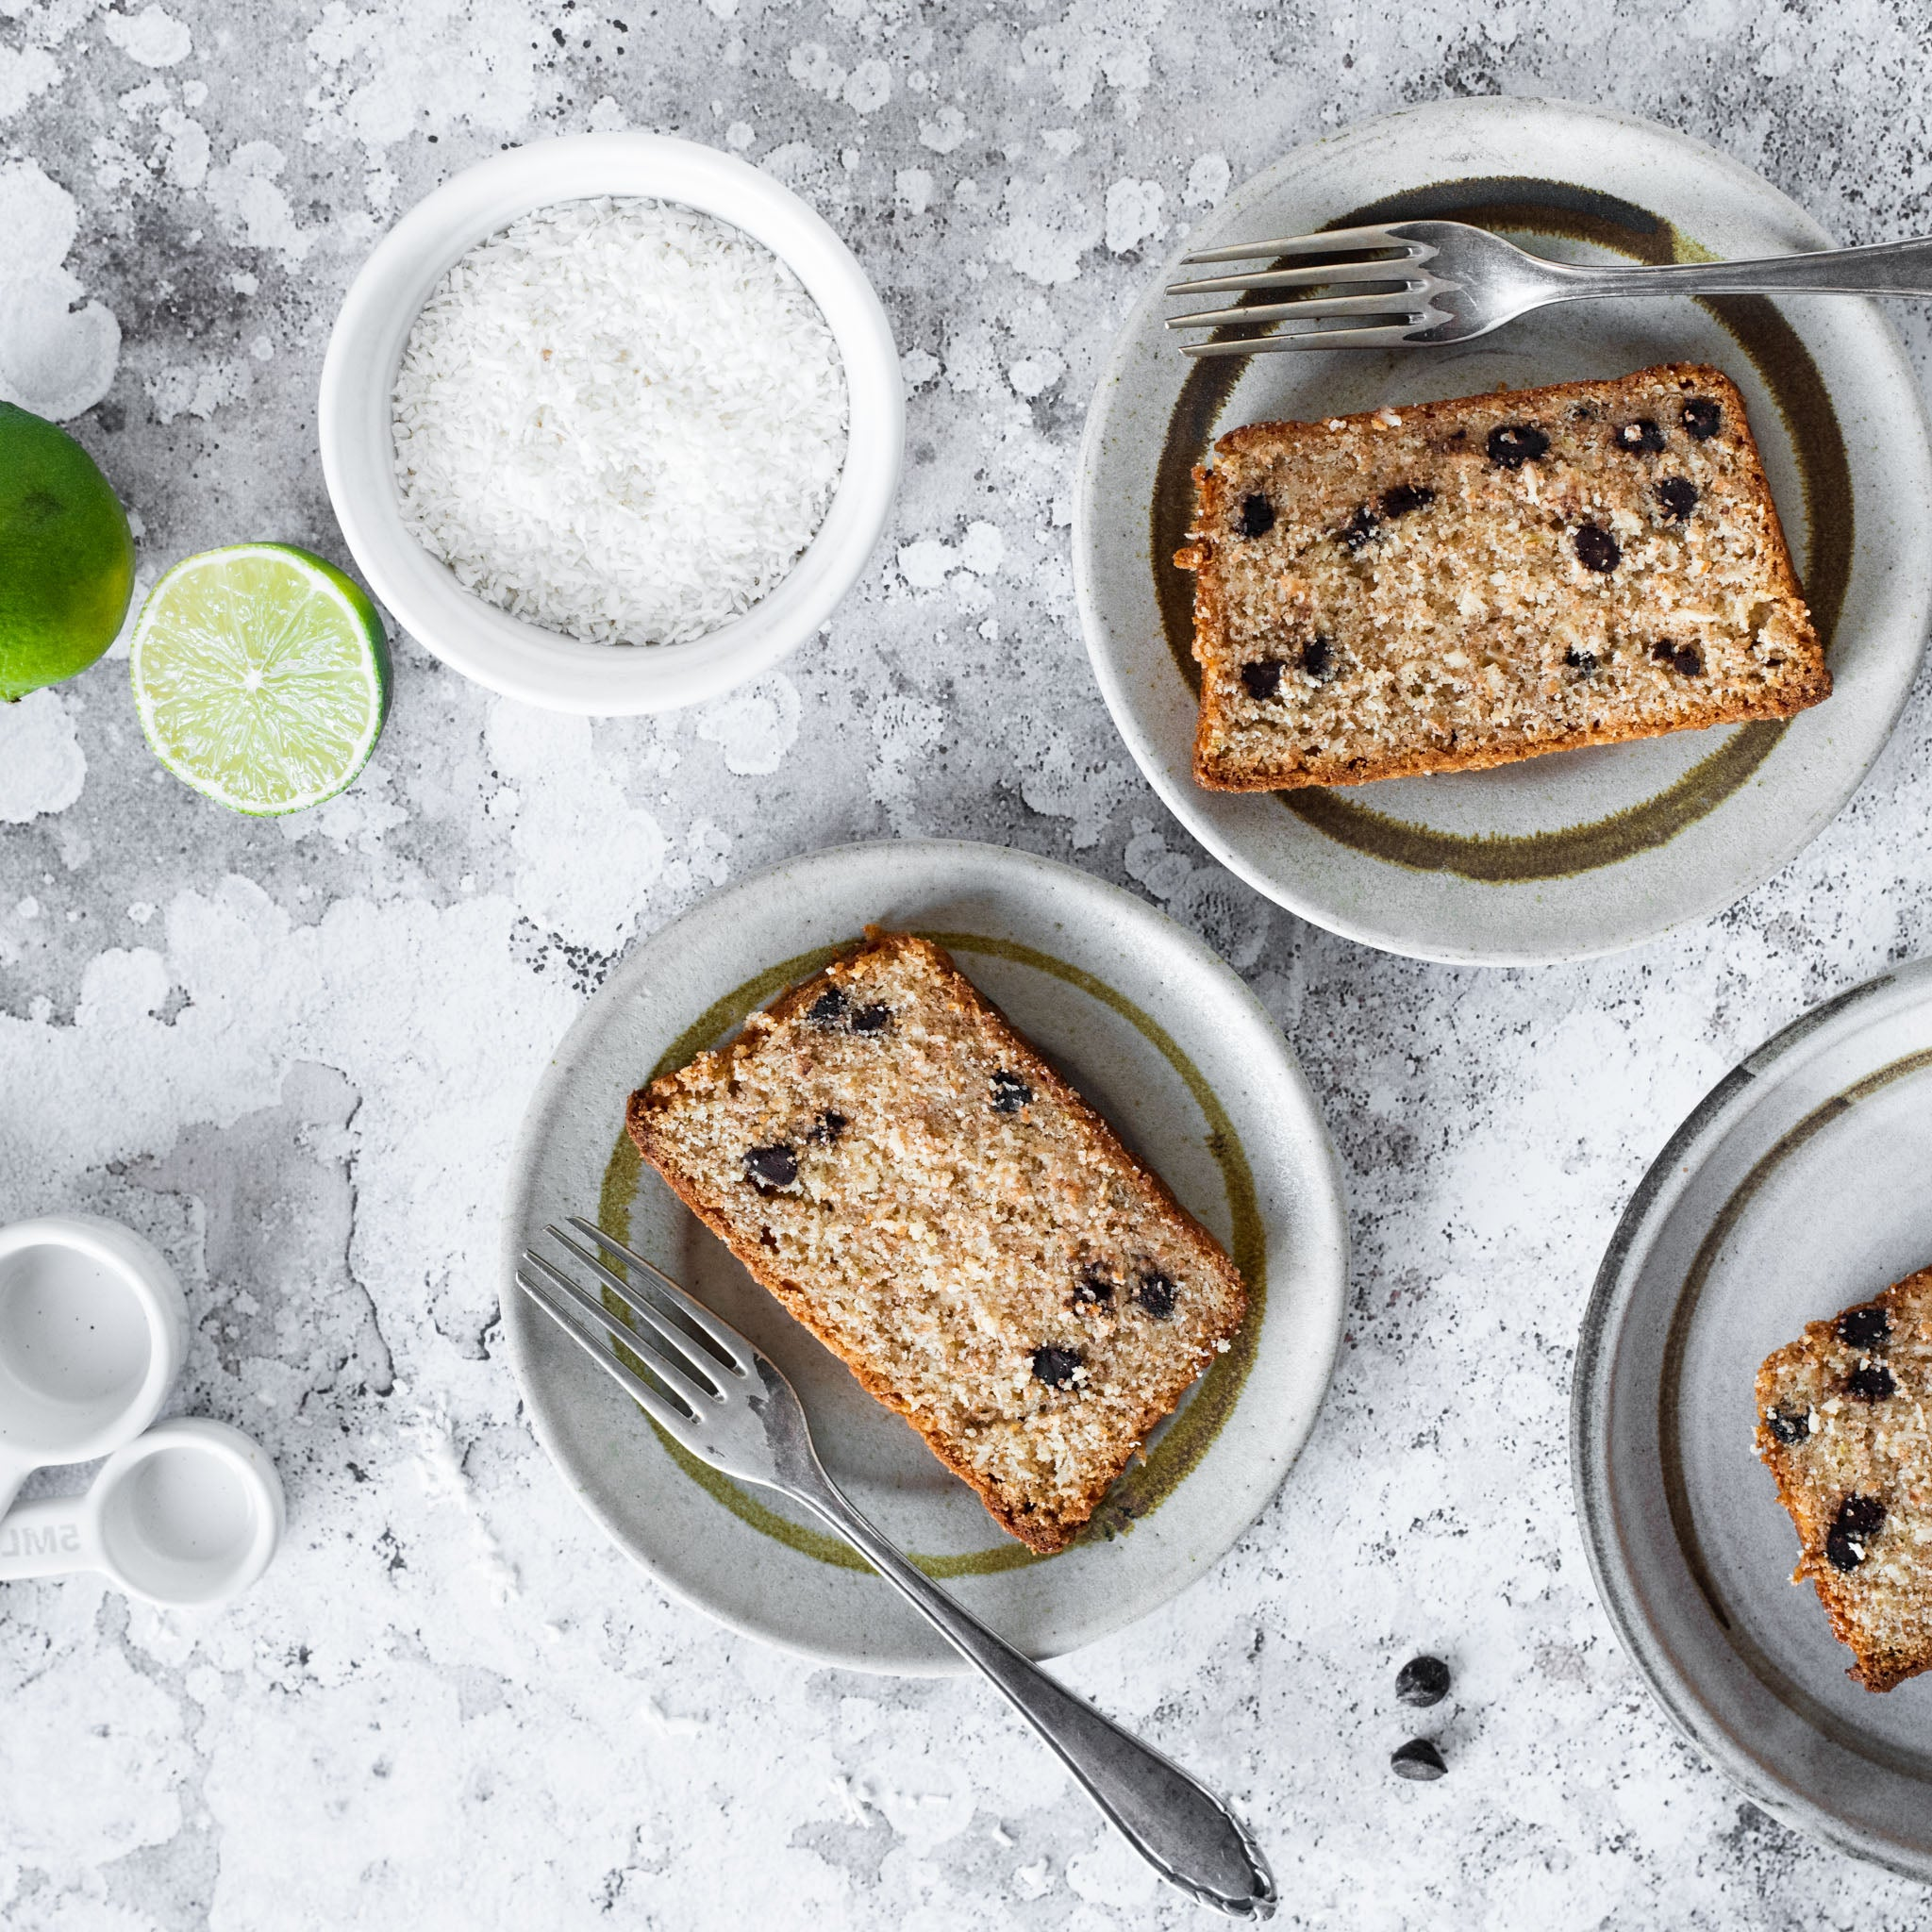 Coconut-Lime-Chocolate-Loaf-by-Allinson-s-(4).jpg